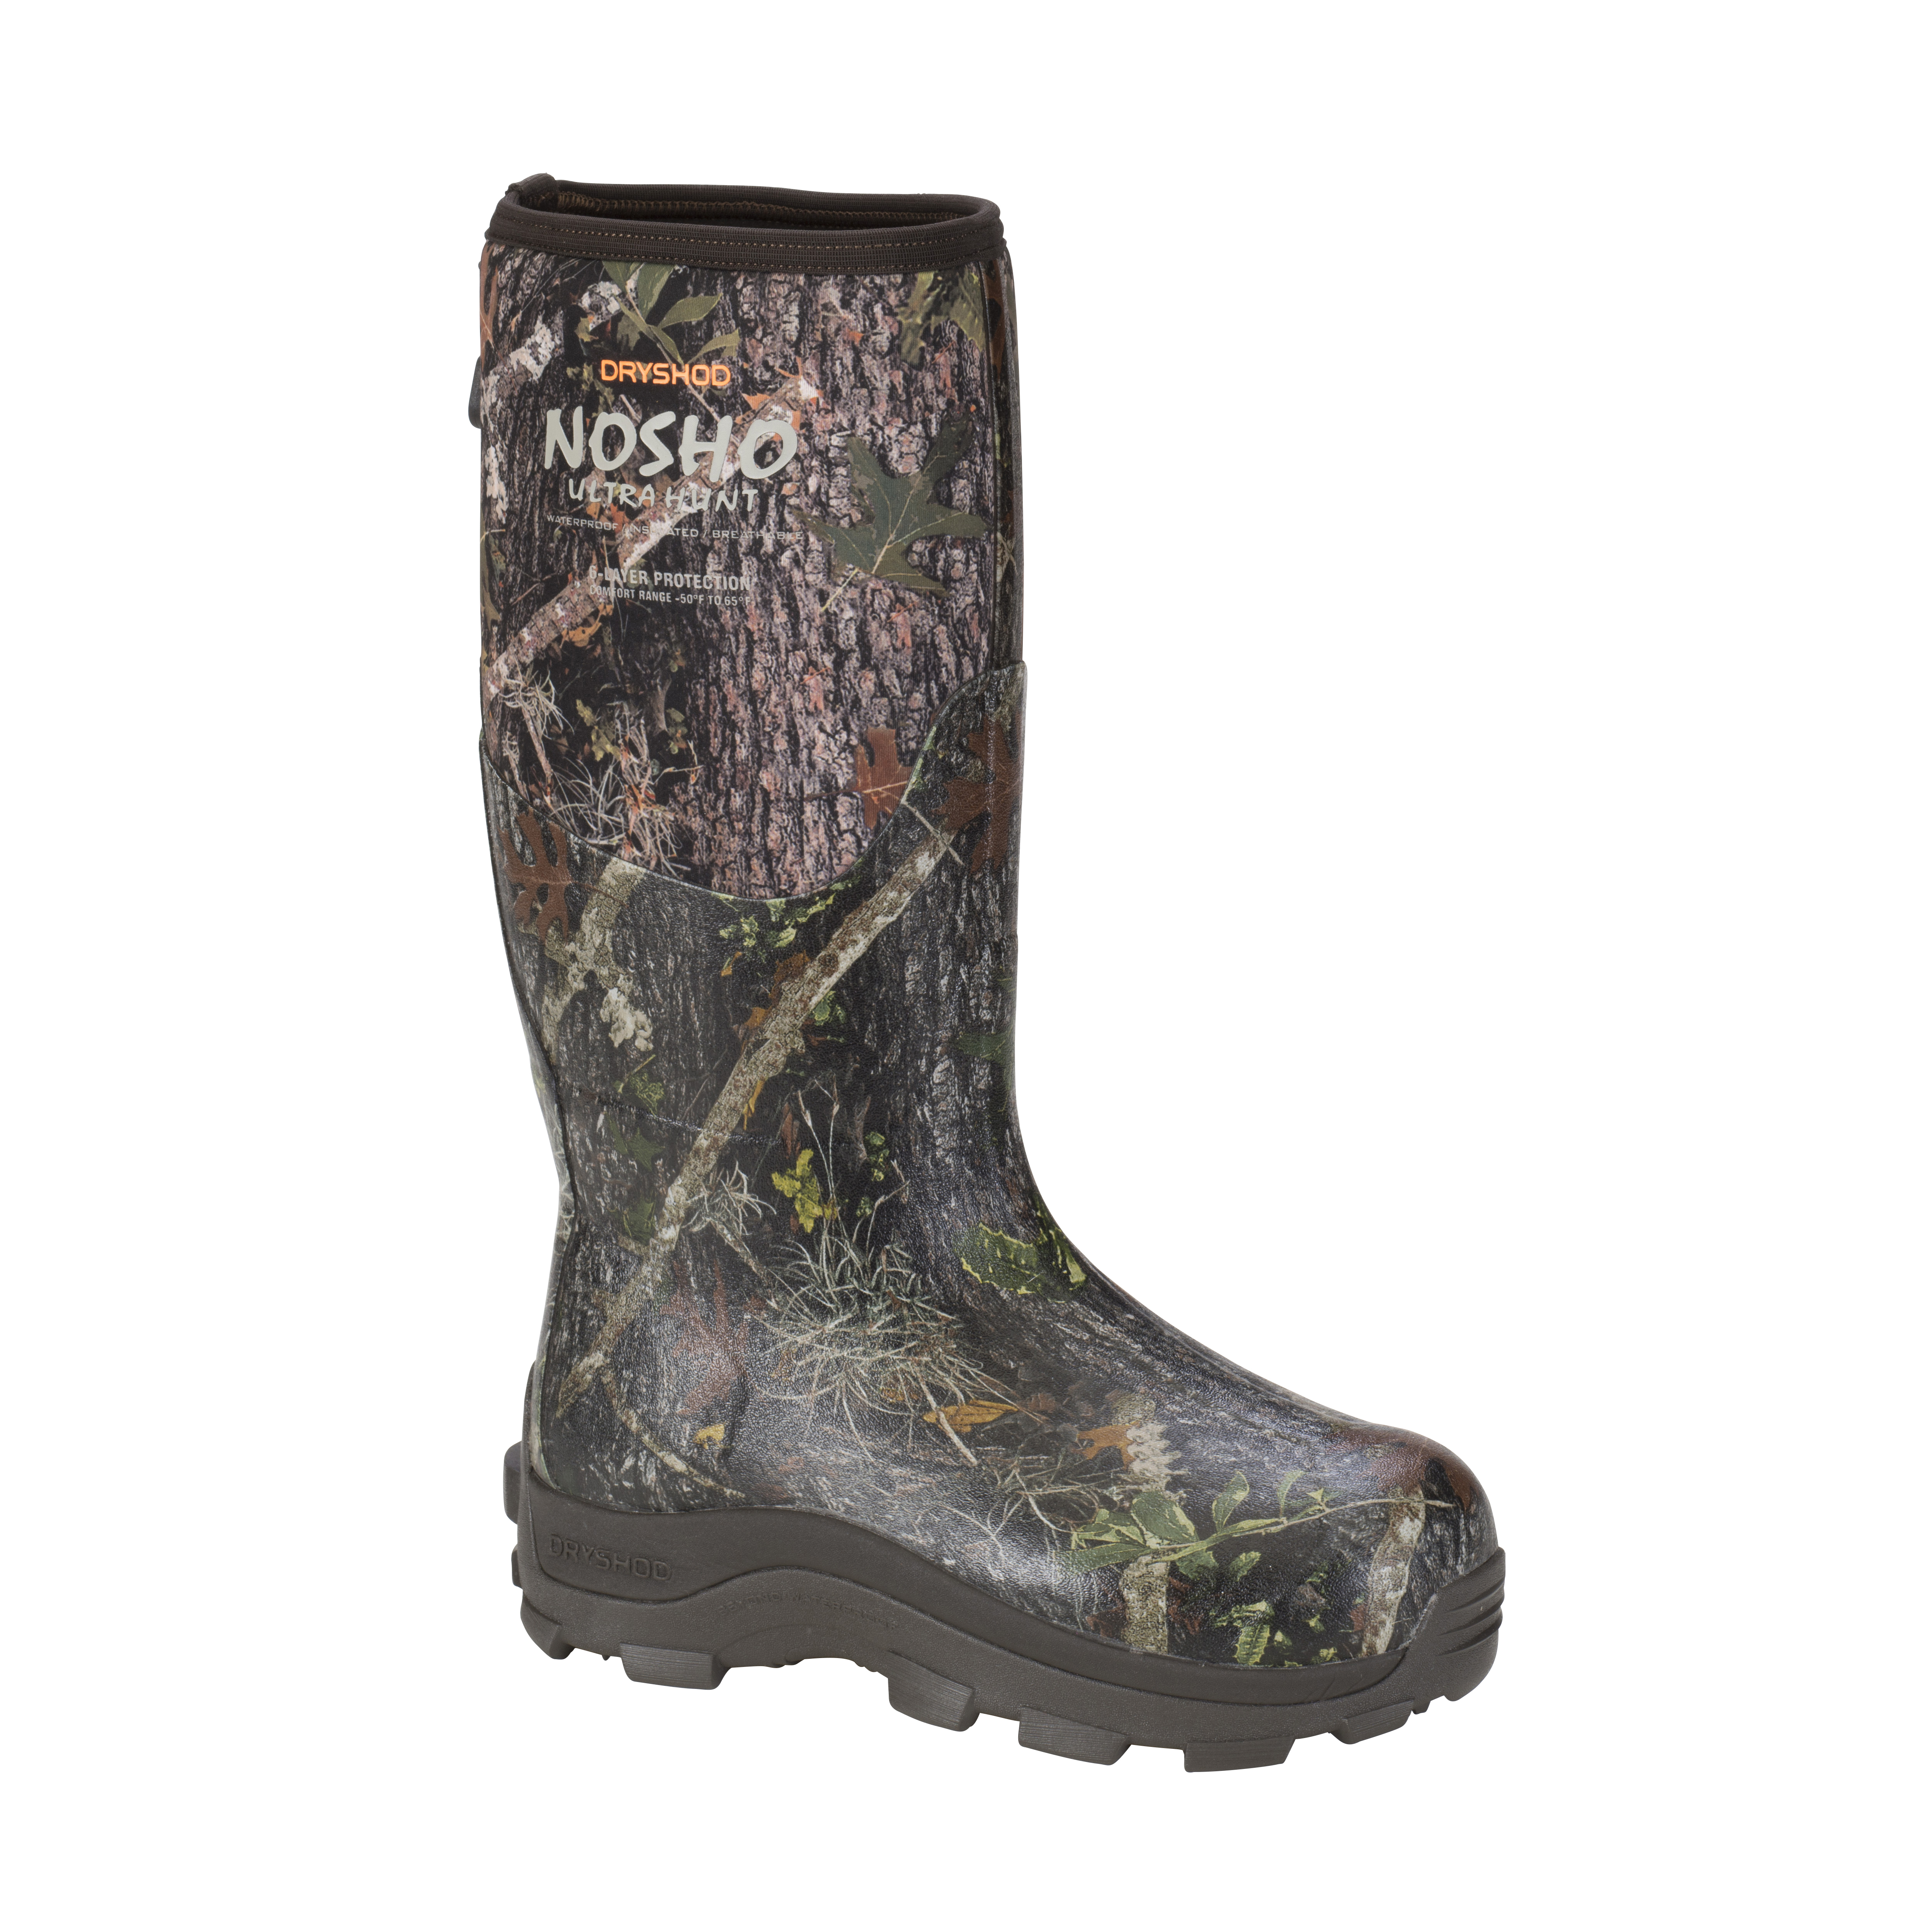 NOSHO Ultra Hunt Men's Cold-Conditions Hunting Boot #MBM-MH-CM